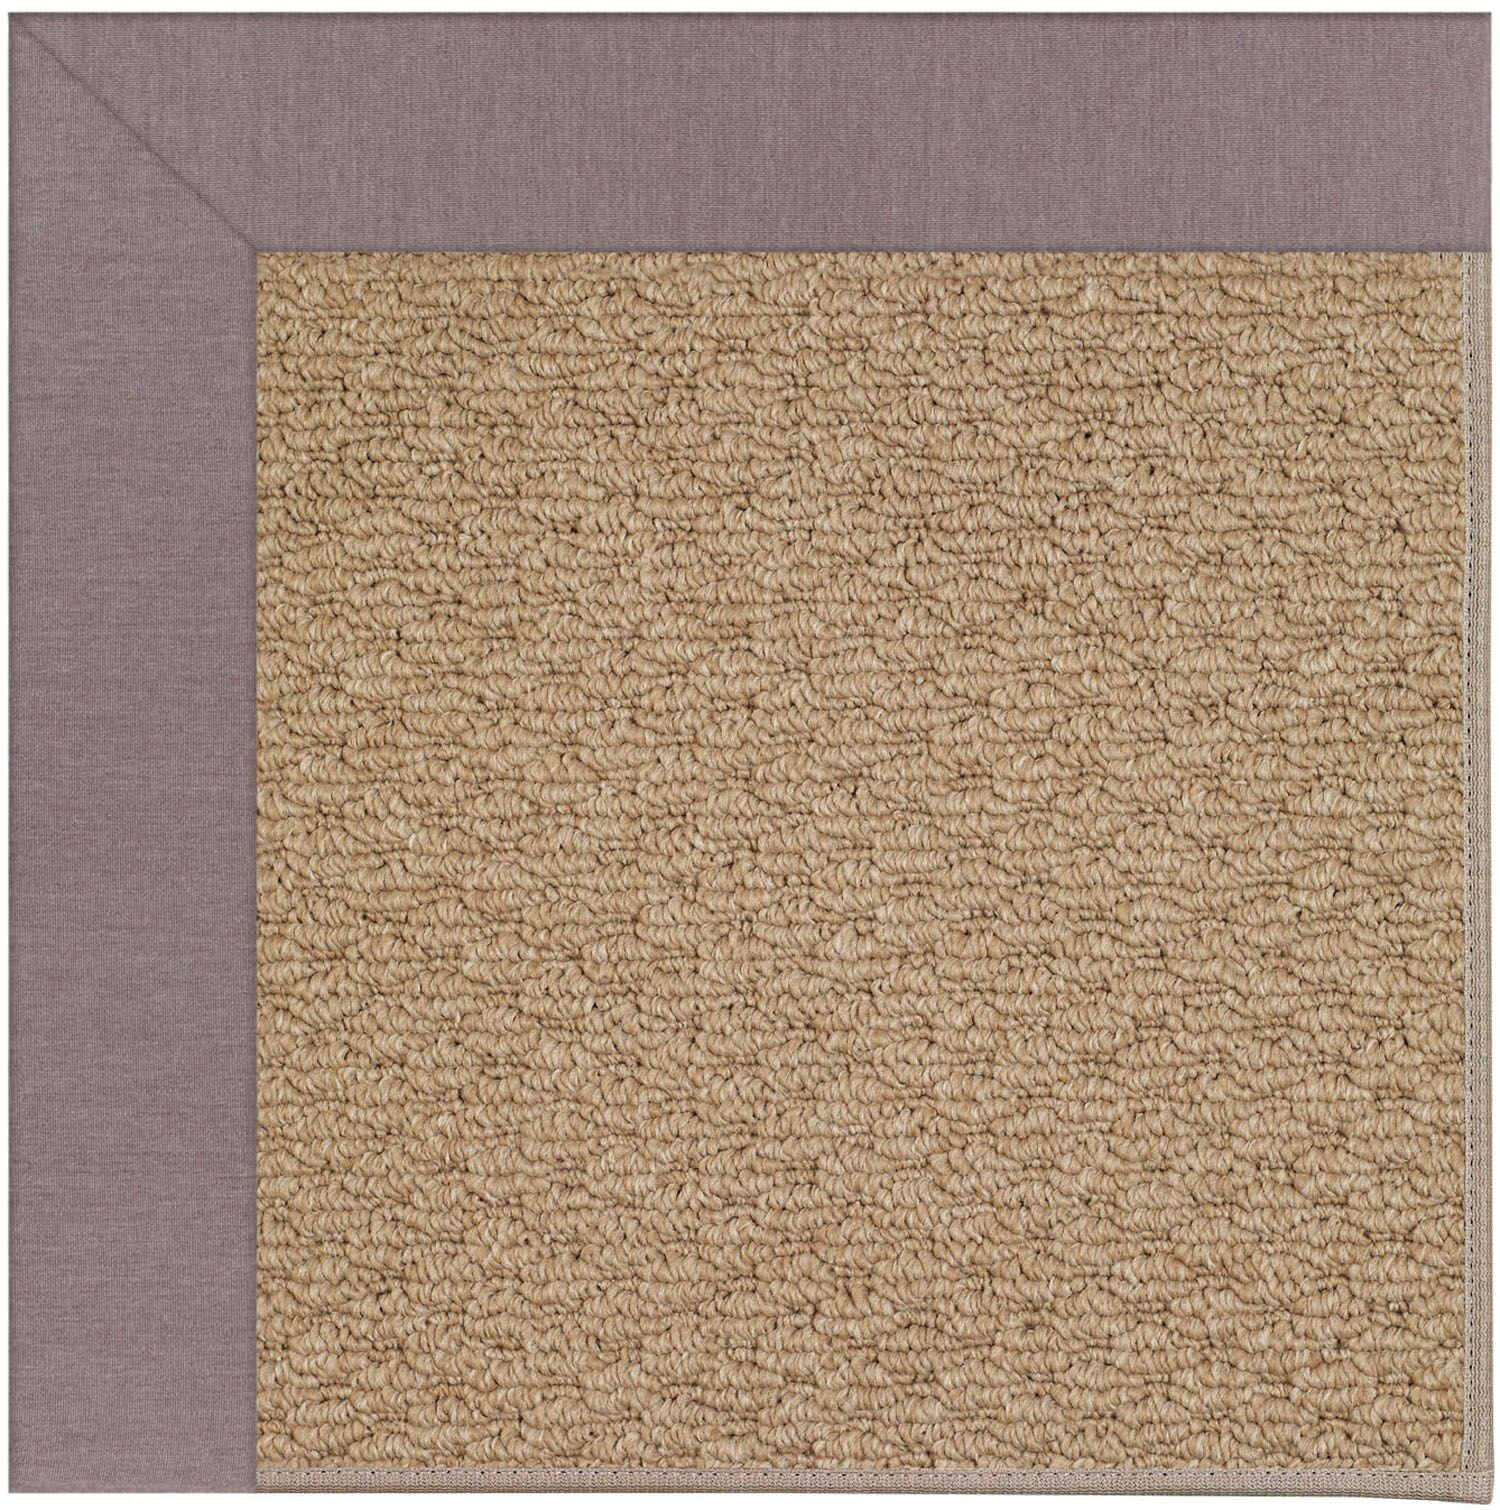 Lisle Machine Tufted Evening and Beige Indoor/Outdoor Area Rug Rug Size: Rectangle 7' x 9'